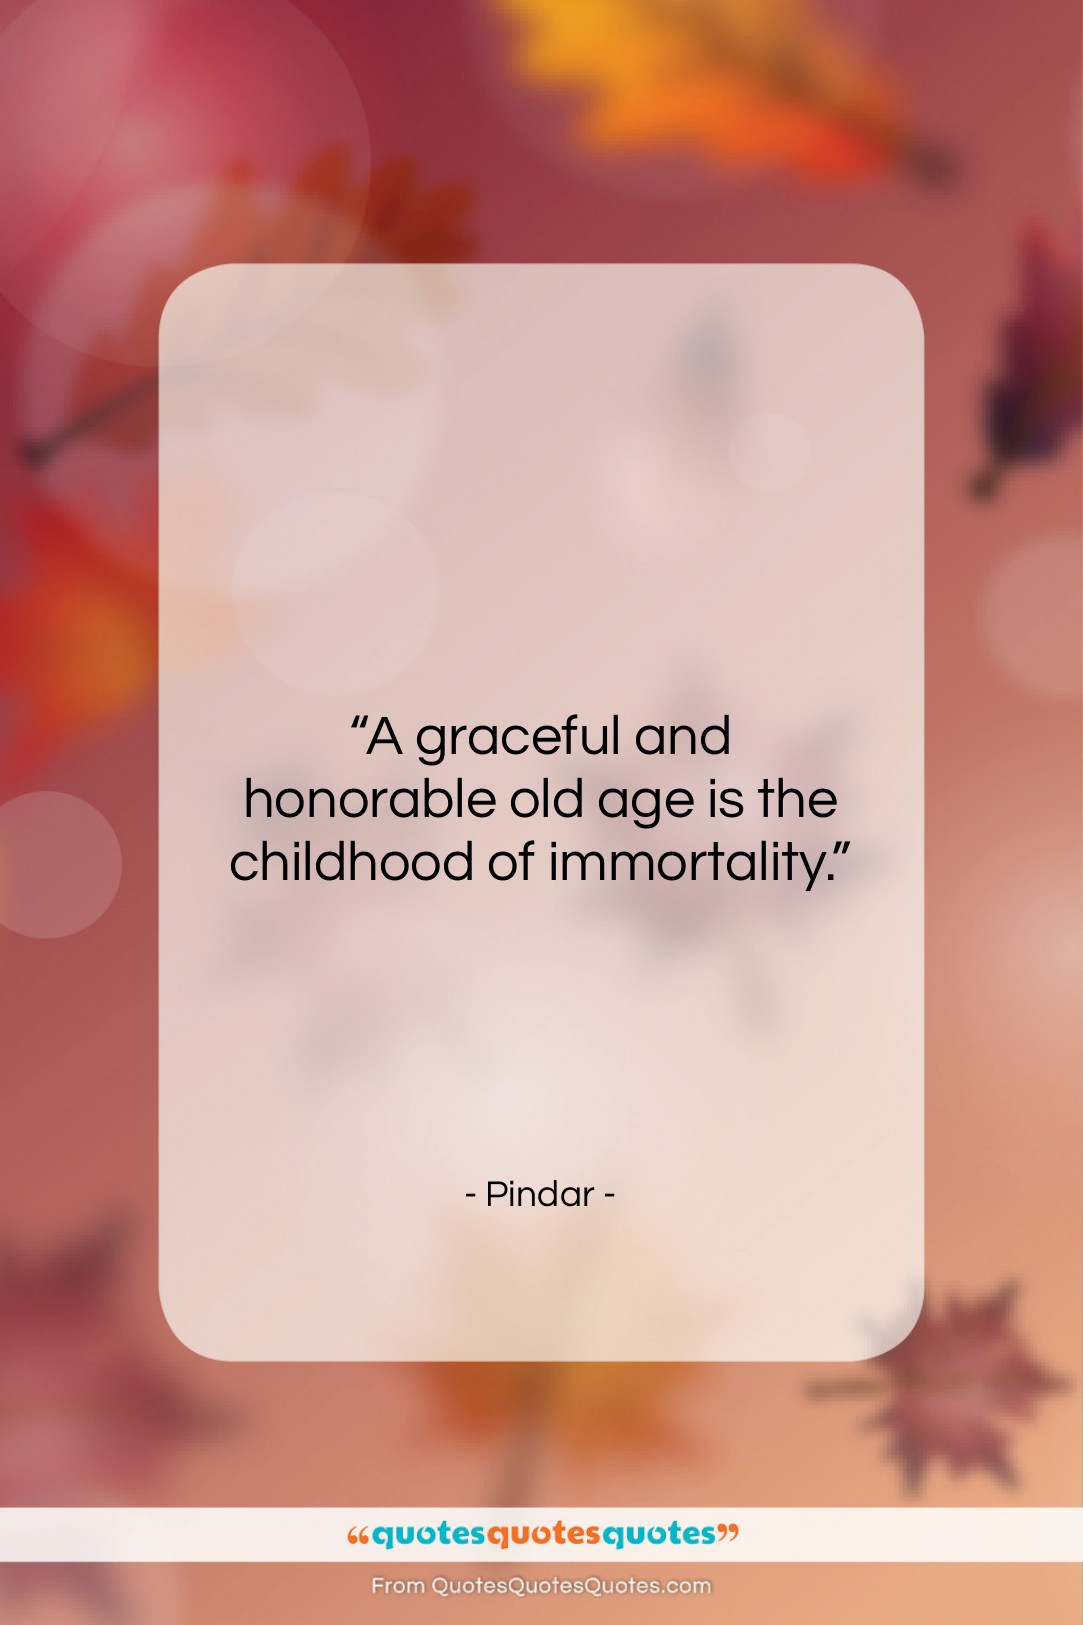 Get The Whole Pindar Quote A Graceful And Honorable Old Age Is